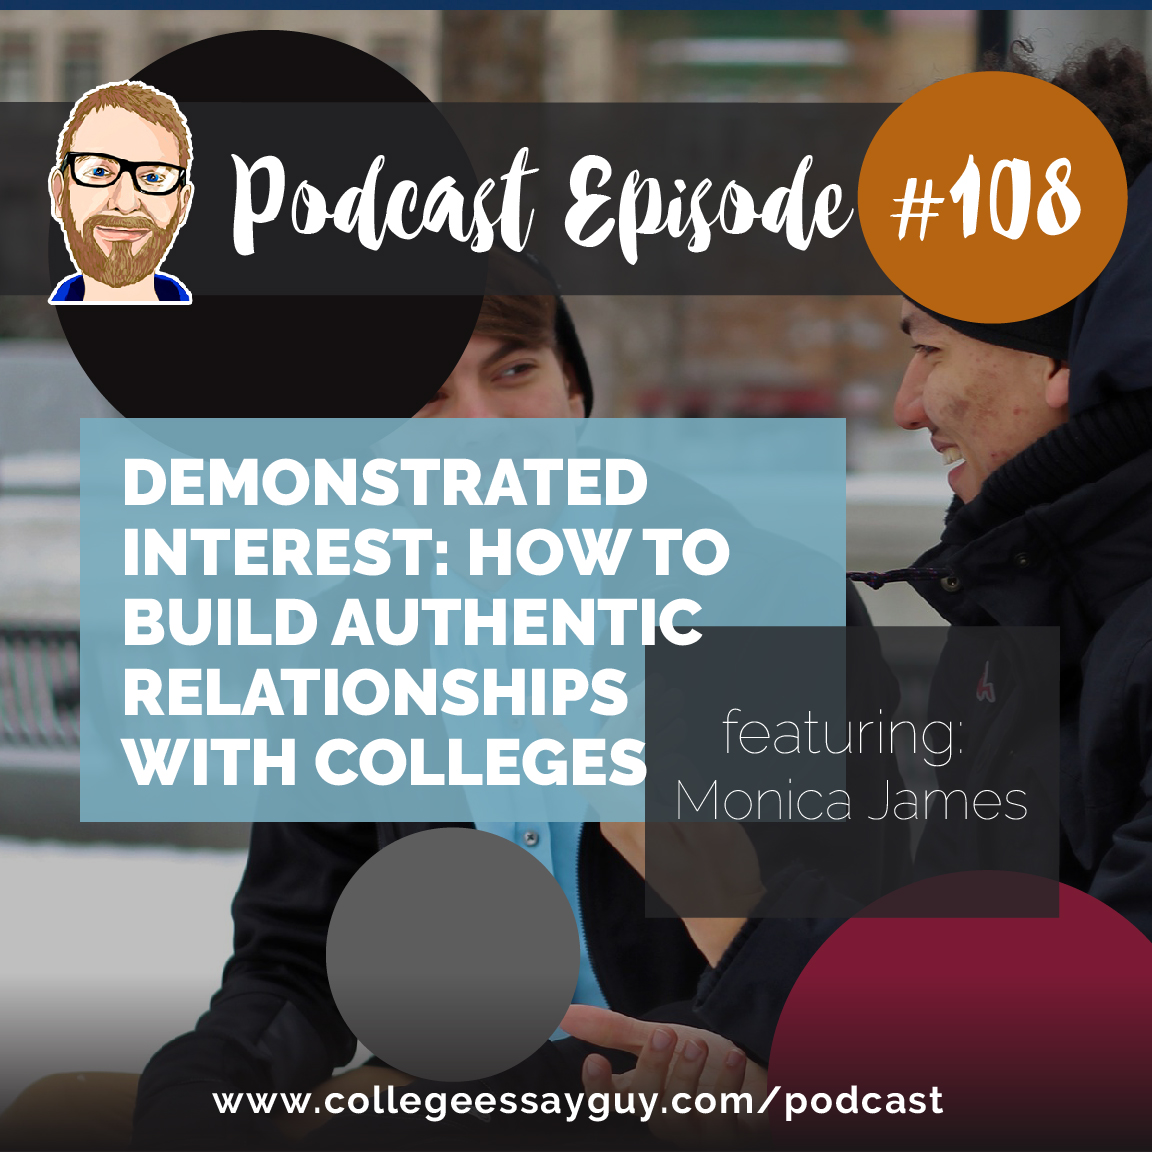 My topic today is demonstrated interest, and at first blush this may not sound like a great way to do that, but I hope by the time you finish this episode and read the accompanying practical guide you'll start to see how this can be something important to know about and consider as you're applying to college.